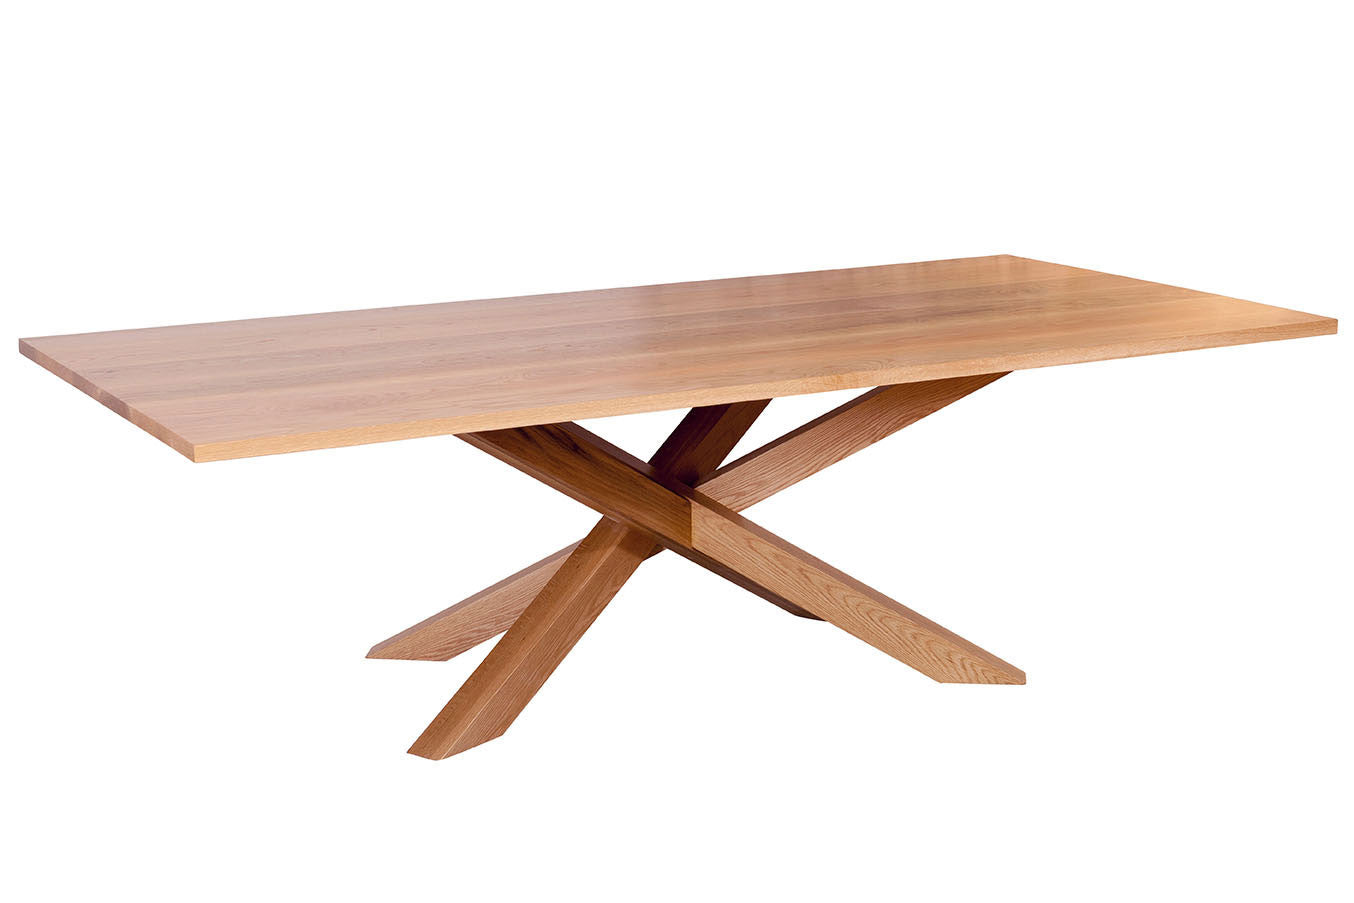 Spinifex Solid American Oak Dining Table With Contemporary Base Design By  Bespoke Furniture Gallery Nedlands Perth ...